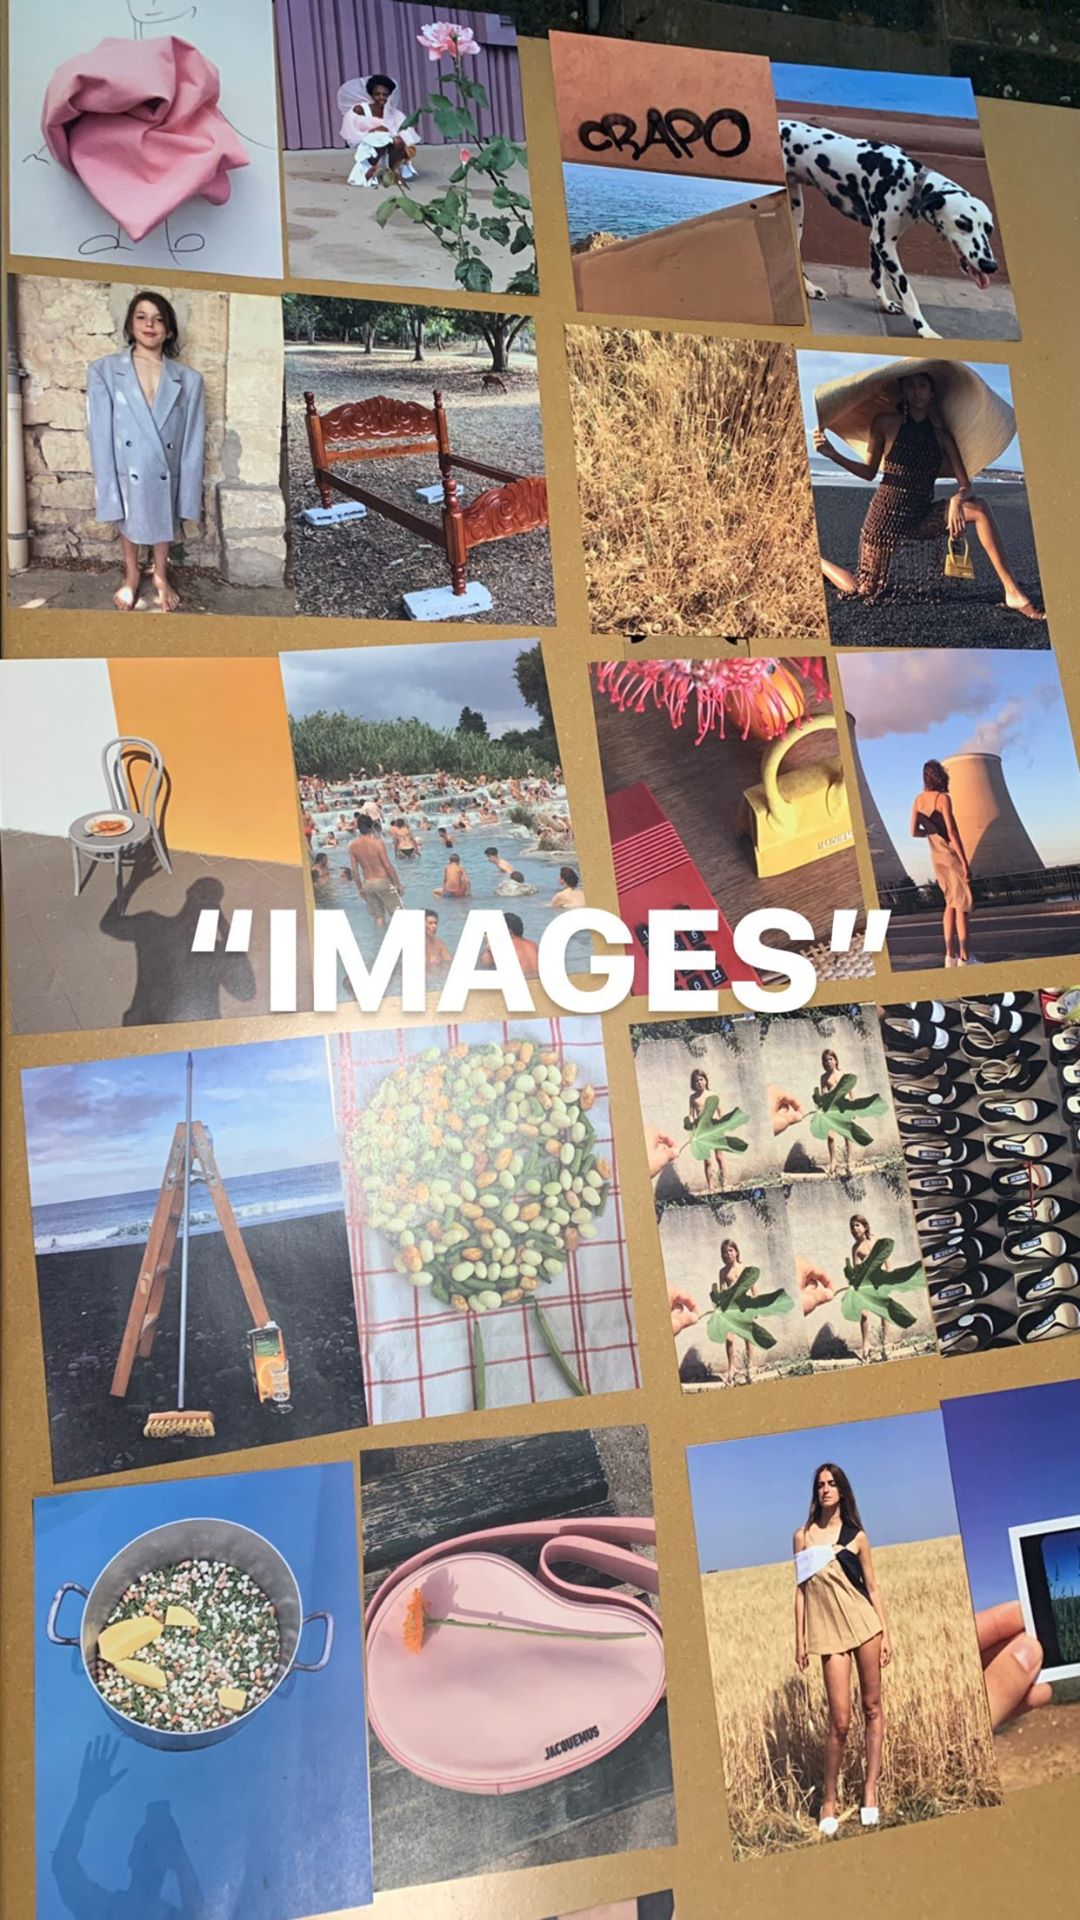 Jacquemus to Release a Book of His Favourite iPhone Images